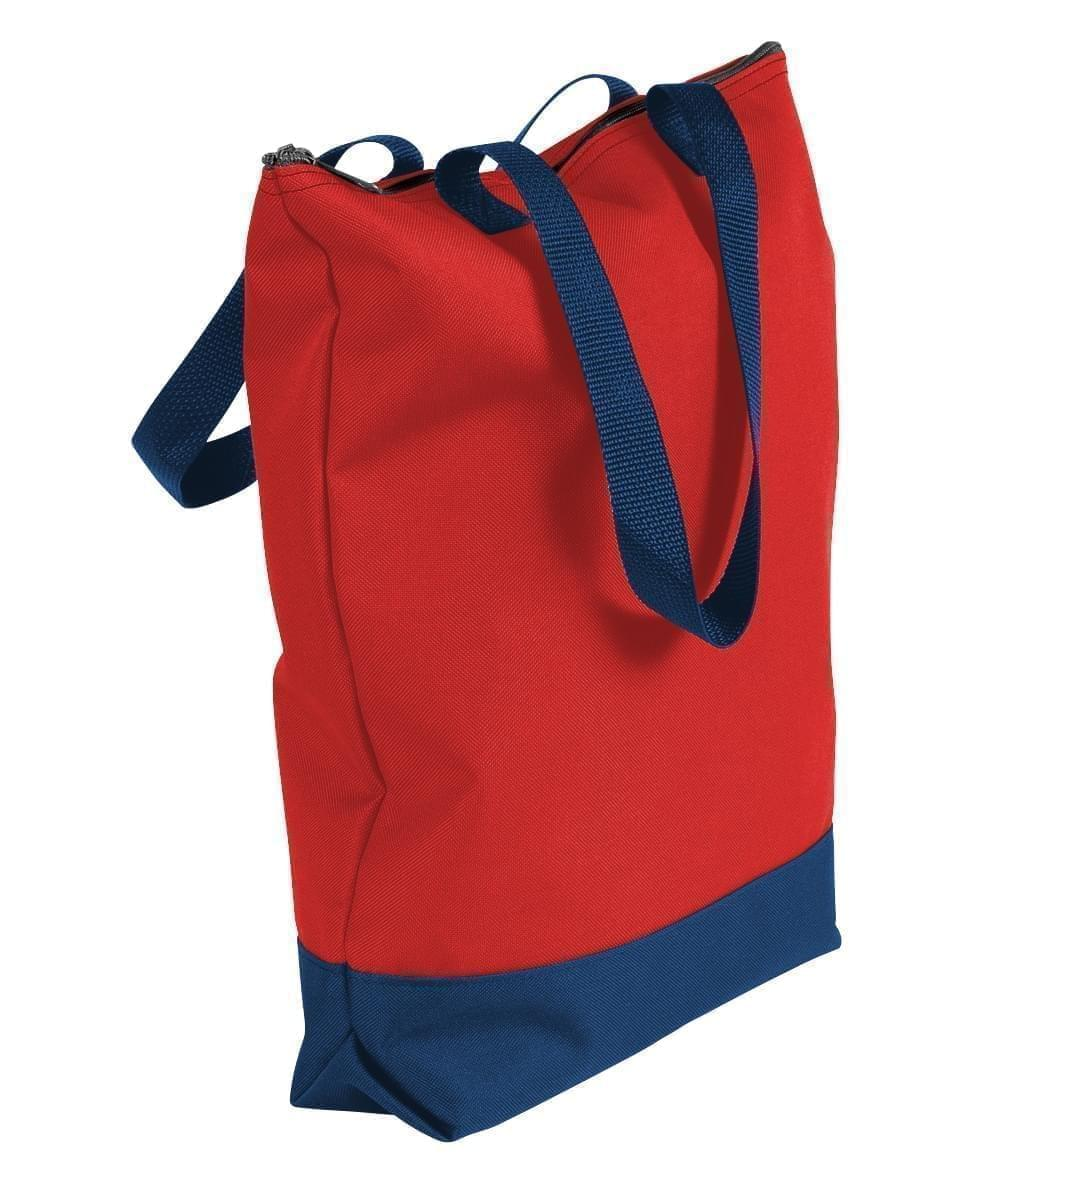 USA Made Canvas Portfolio Tote Bags, Red-Navy, 1AAMX1UAEZ